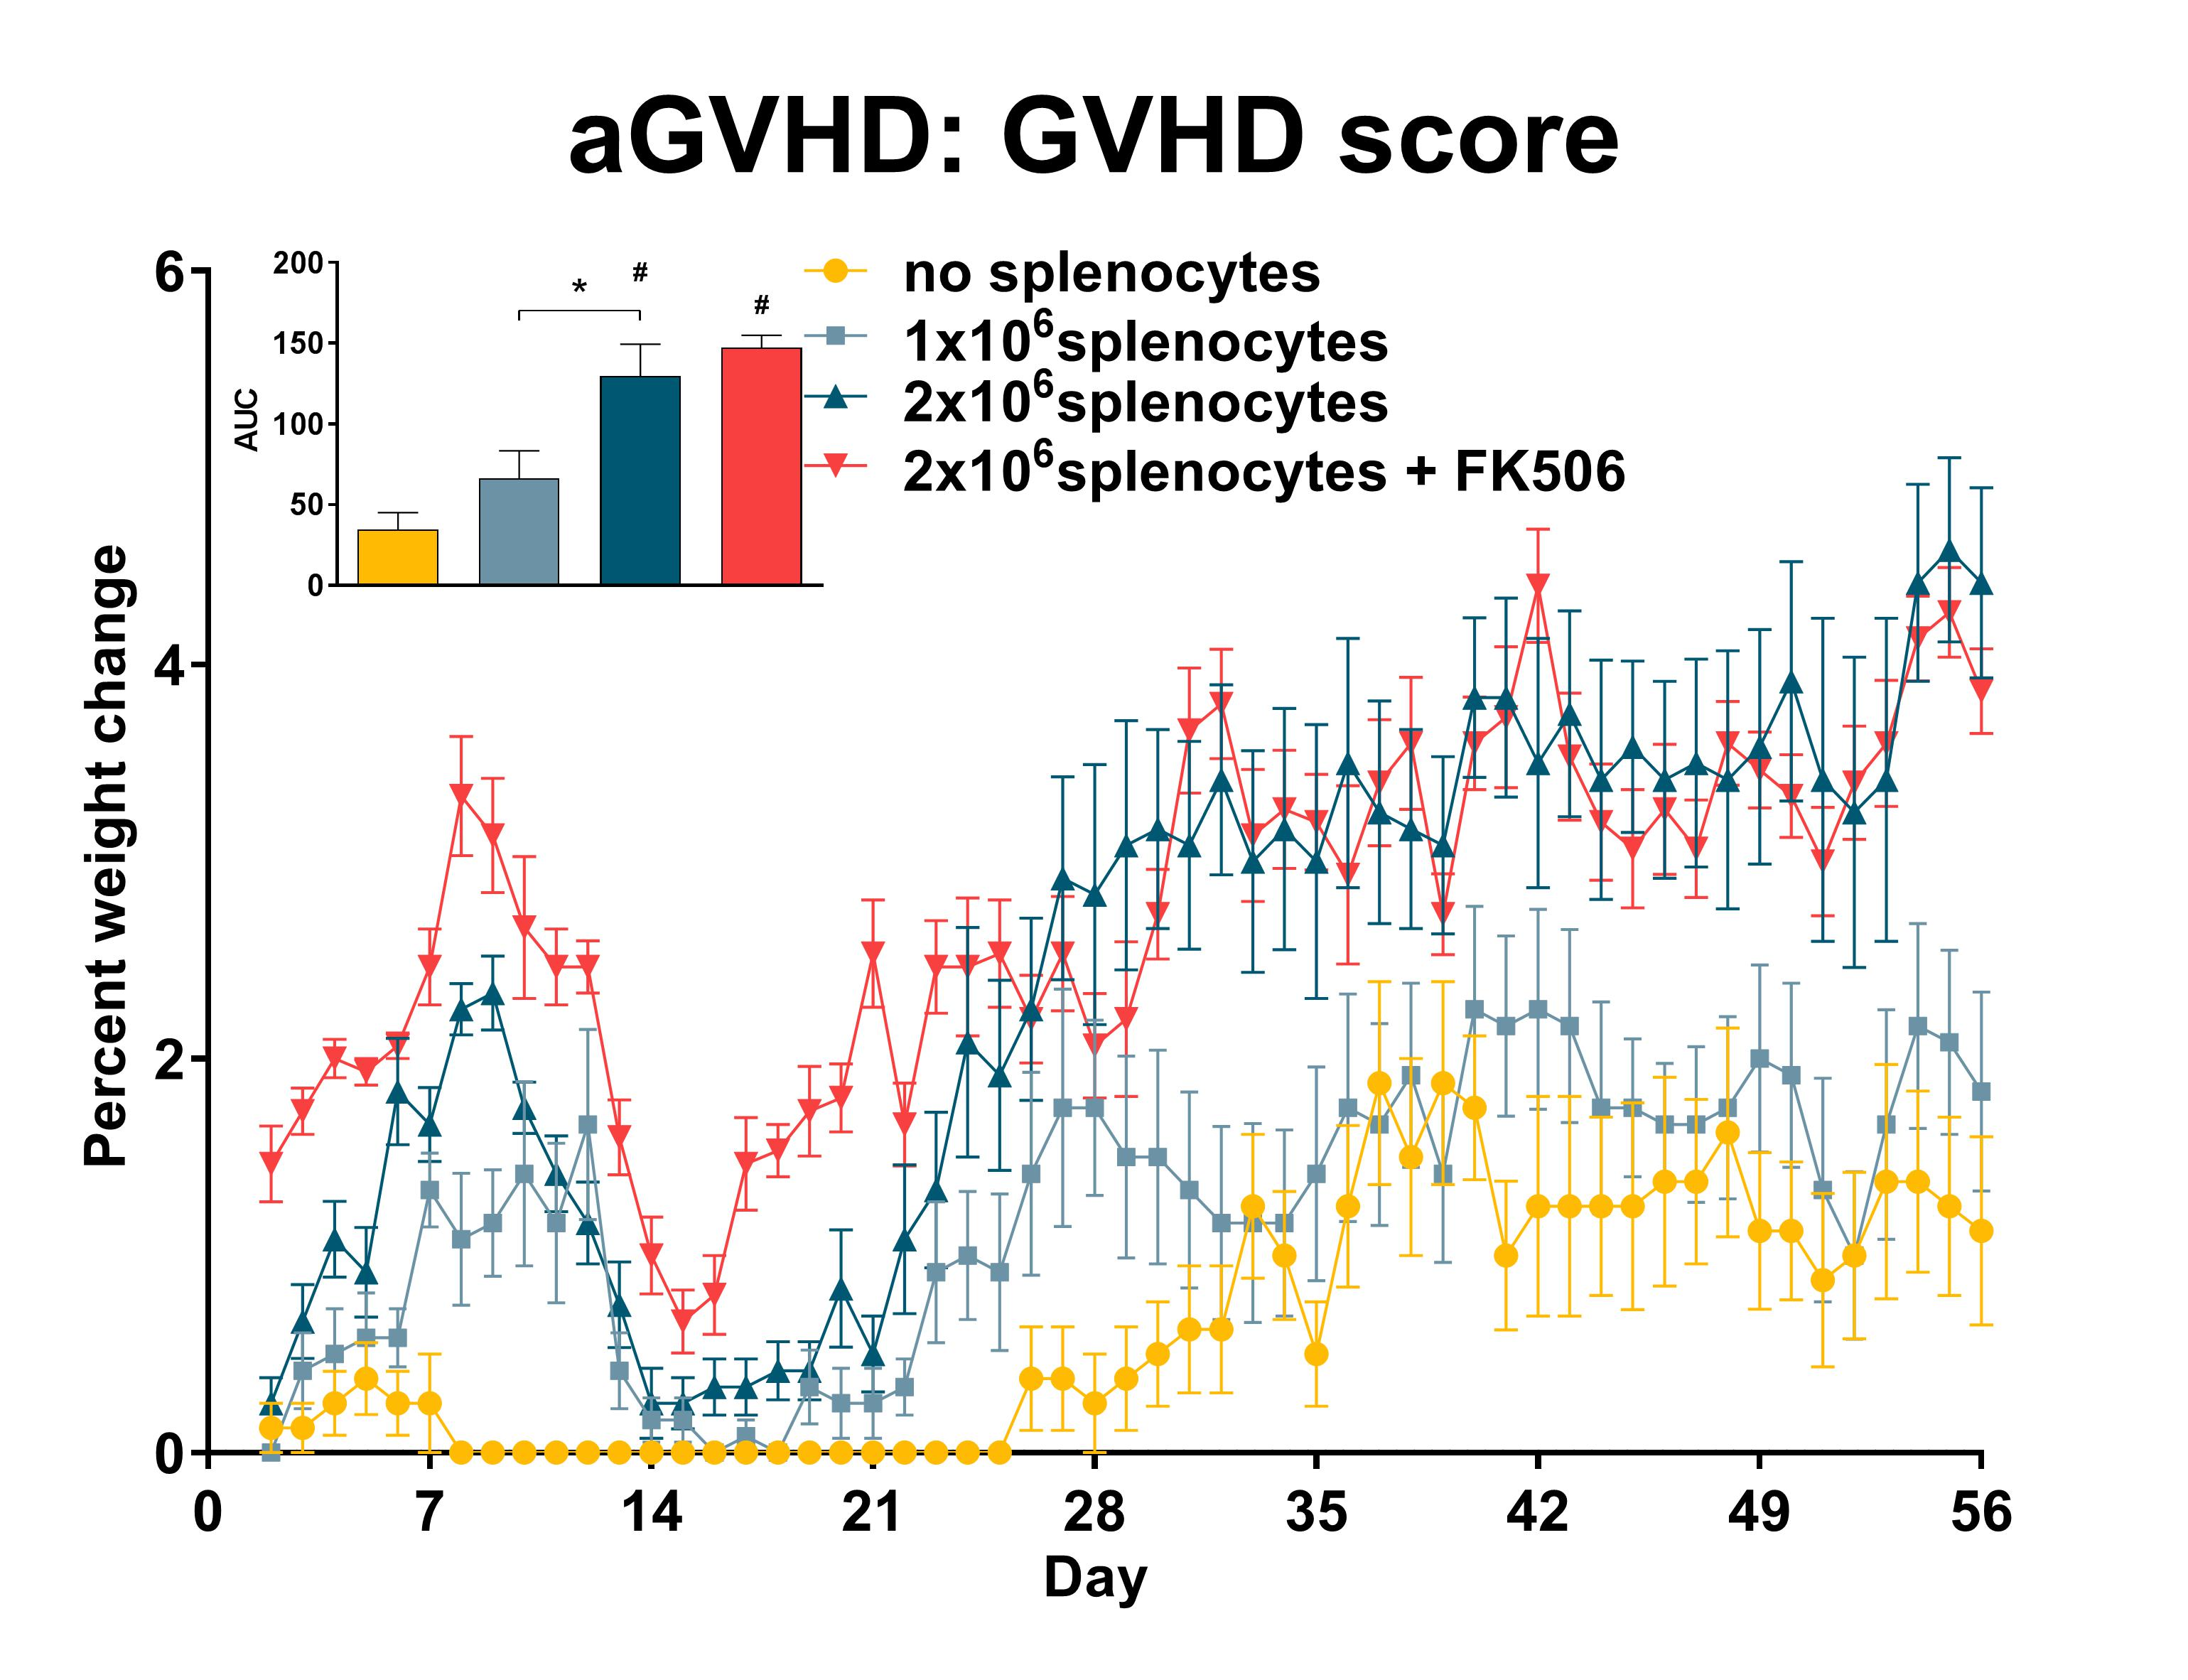 Recipient mice were pre-conditioned and transplanted with 1x107 donor-derived CD3-depleted bone marrow cells supplemented with different numbers of splenocytes (see legend) on day 0. GVHD score was recorded daily. Statistical evaluation by one-way ANOVA with Holm-Šidák's multiple comparison post-test. *: p<0.05 comparing indicated groups; #: p<0.05 comparing indicated groups to the 'no splenocytes' control. AUC: area under the curve; n=15 per group; data is presented as mean ±SEM. AUC: area under the curve;